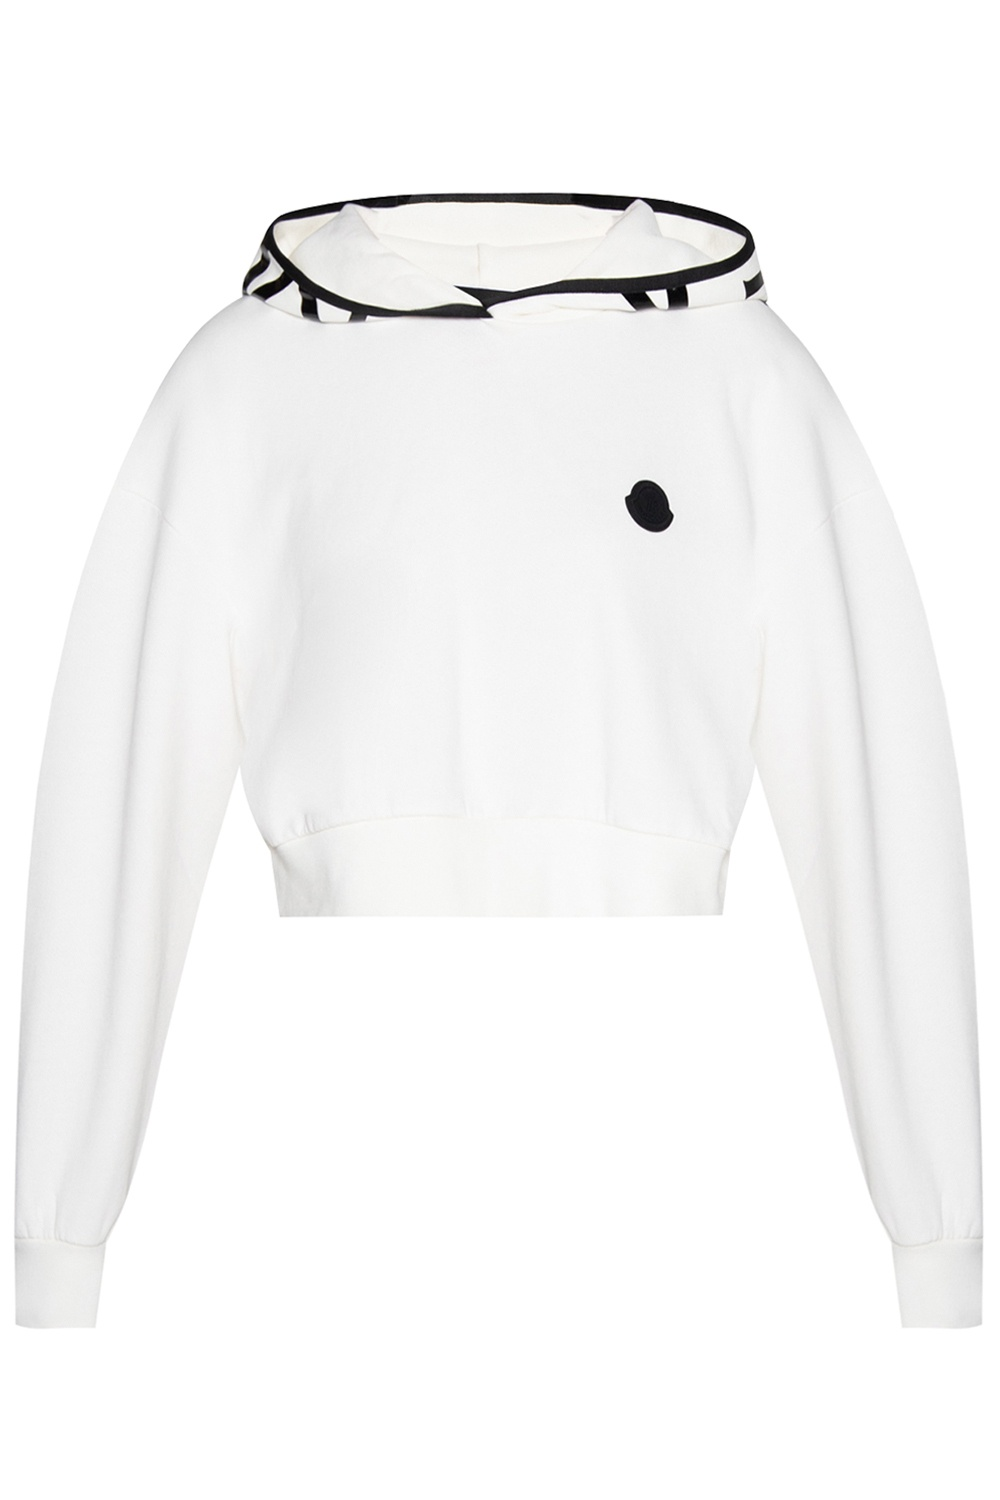 Moncler 'O' Cropped hoodie with logo